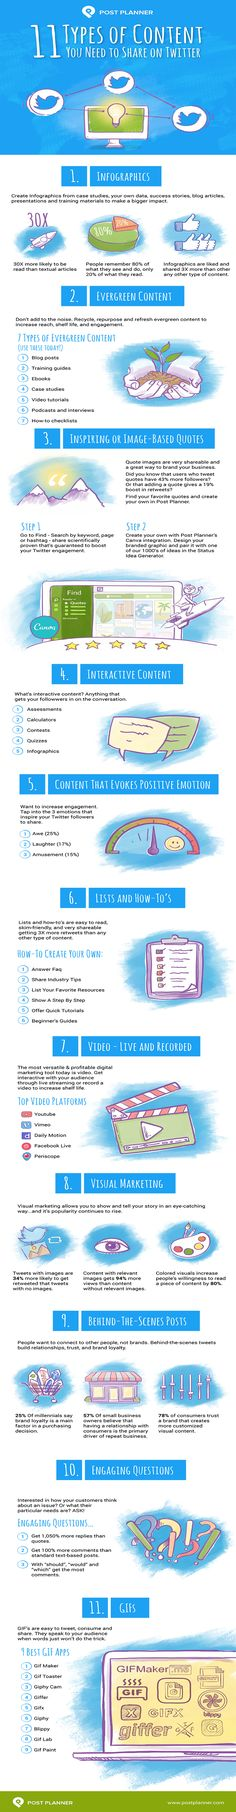 Do Twitter Like a Pro: 11 Types of Content to Share With Your Followers #Infographic